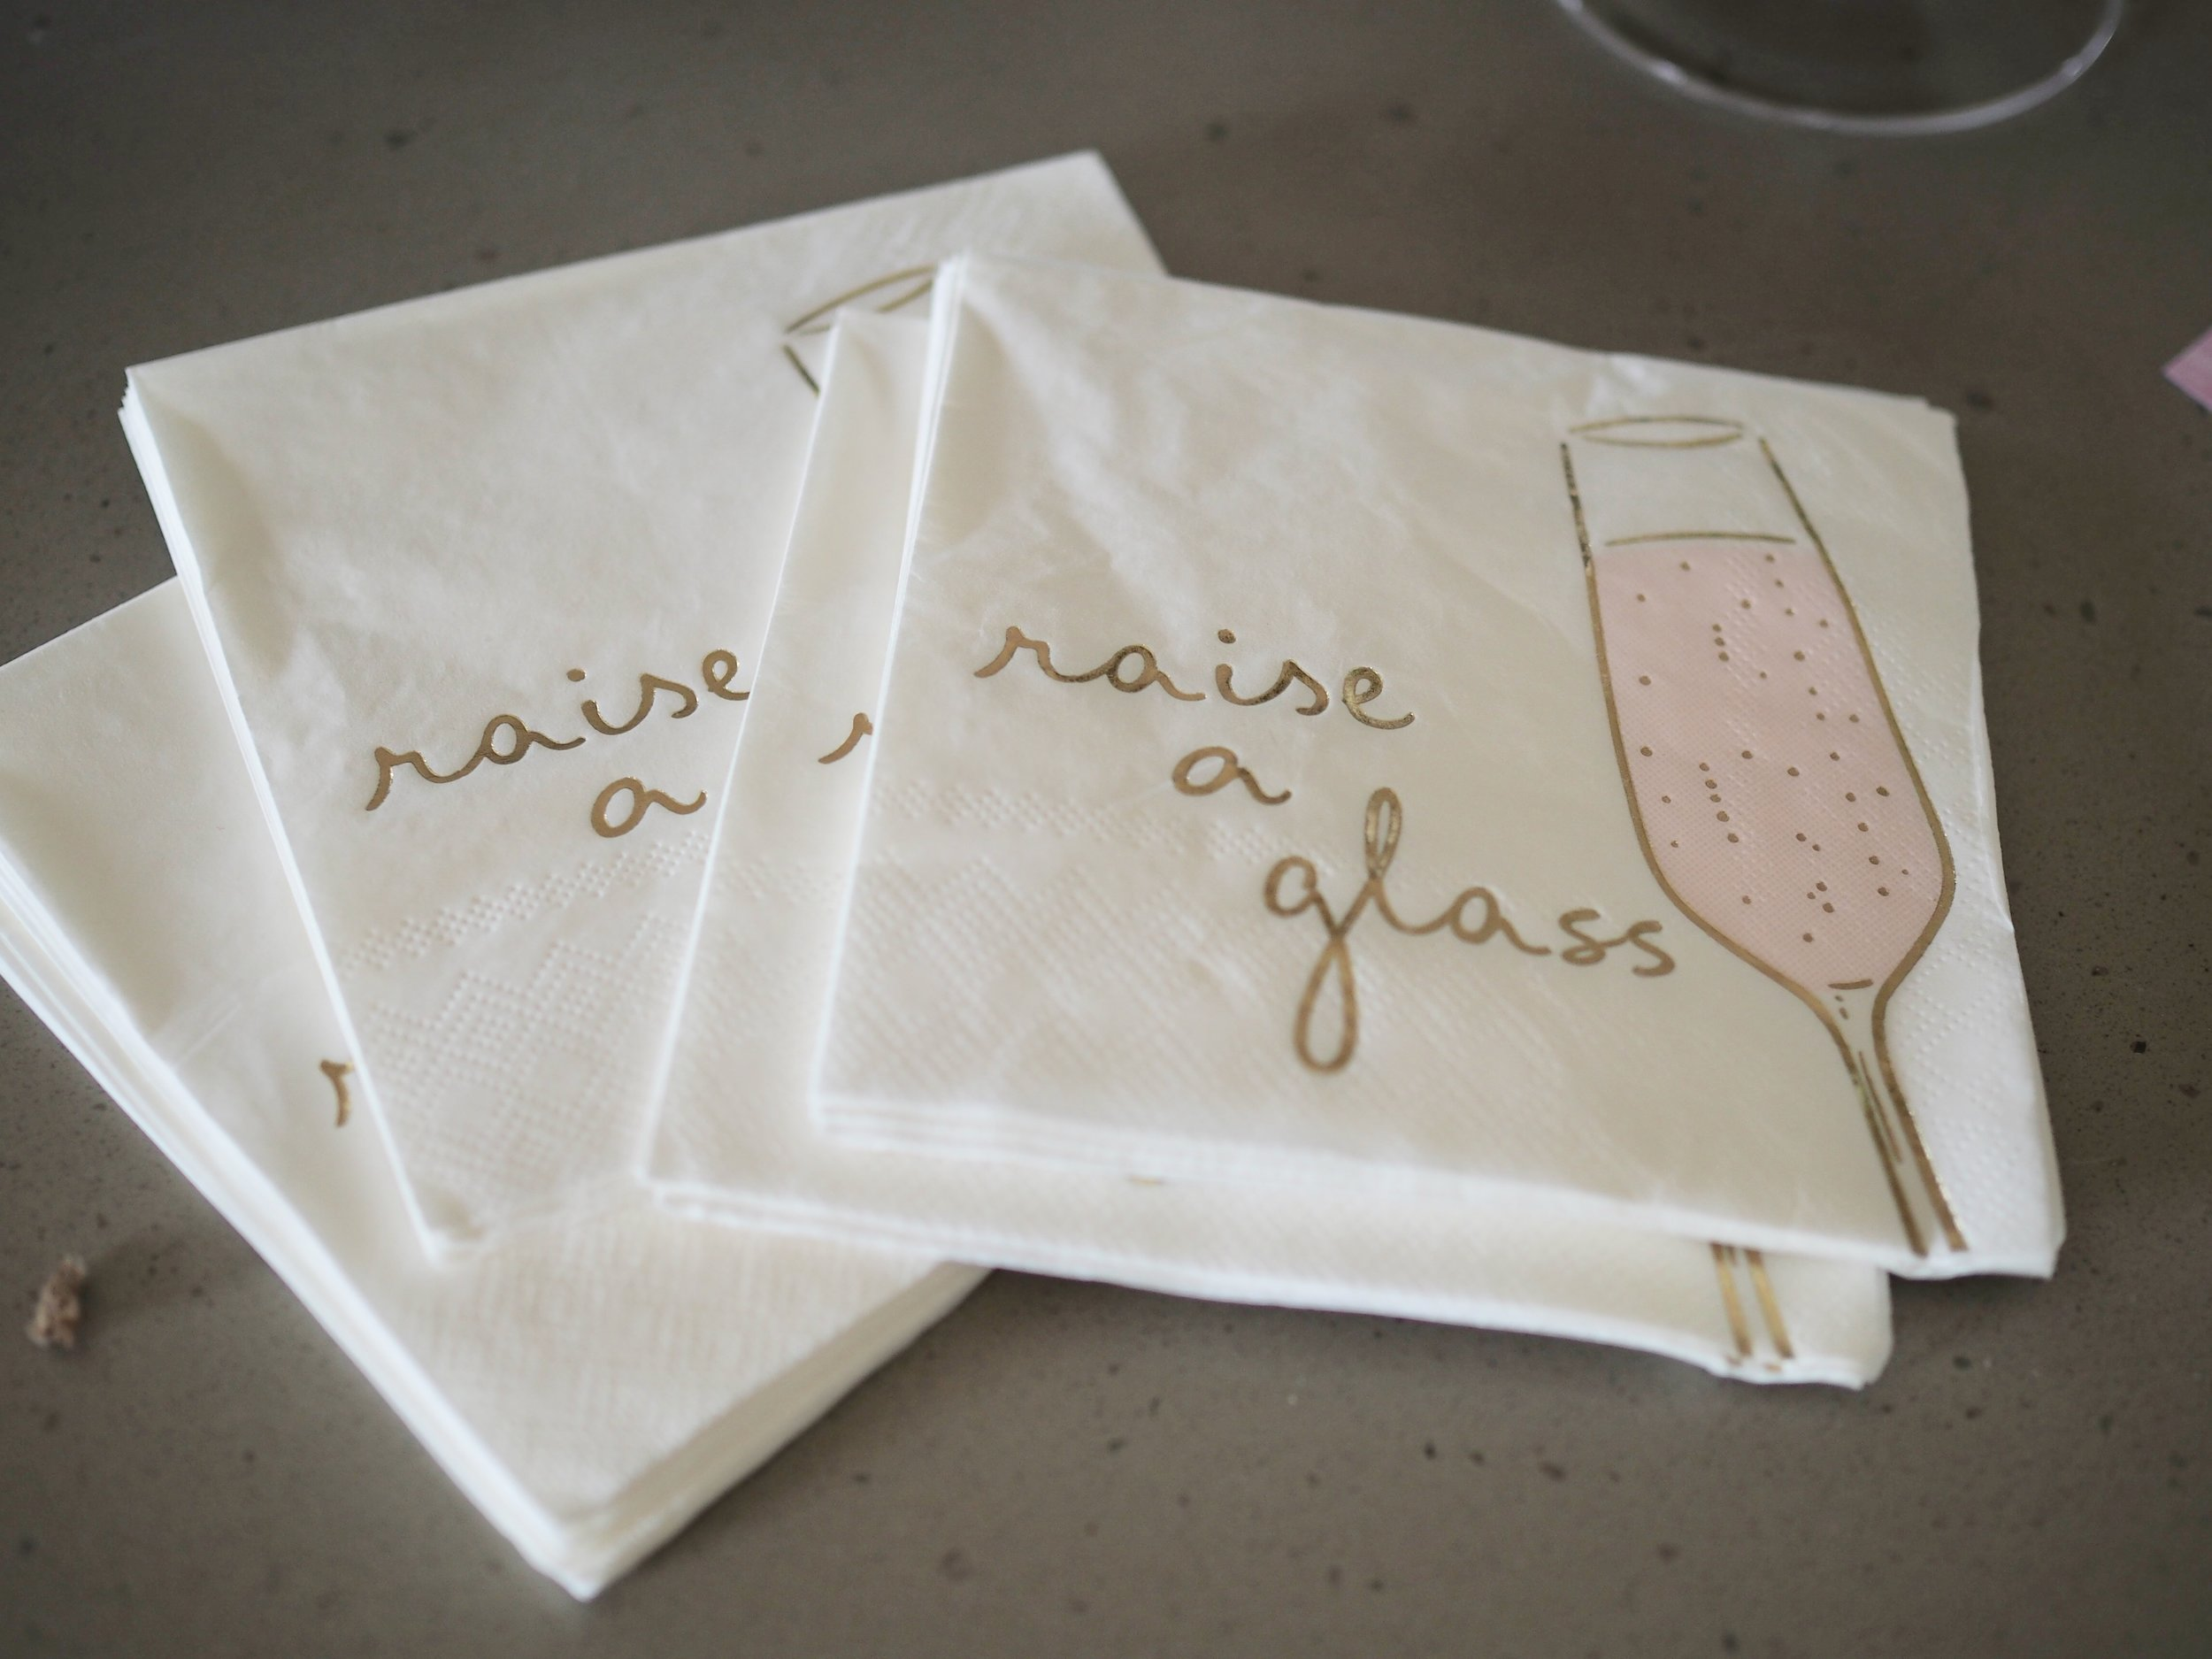 The perfect cocktail napkins